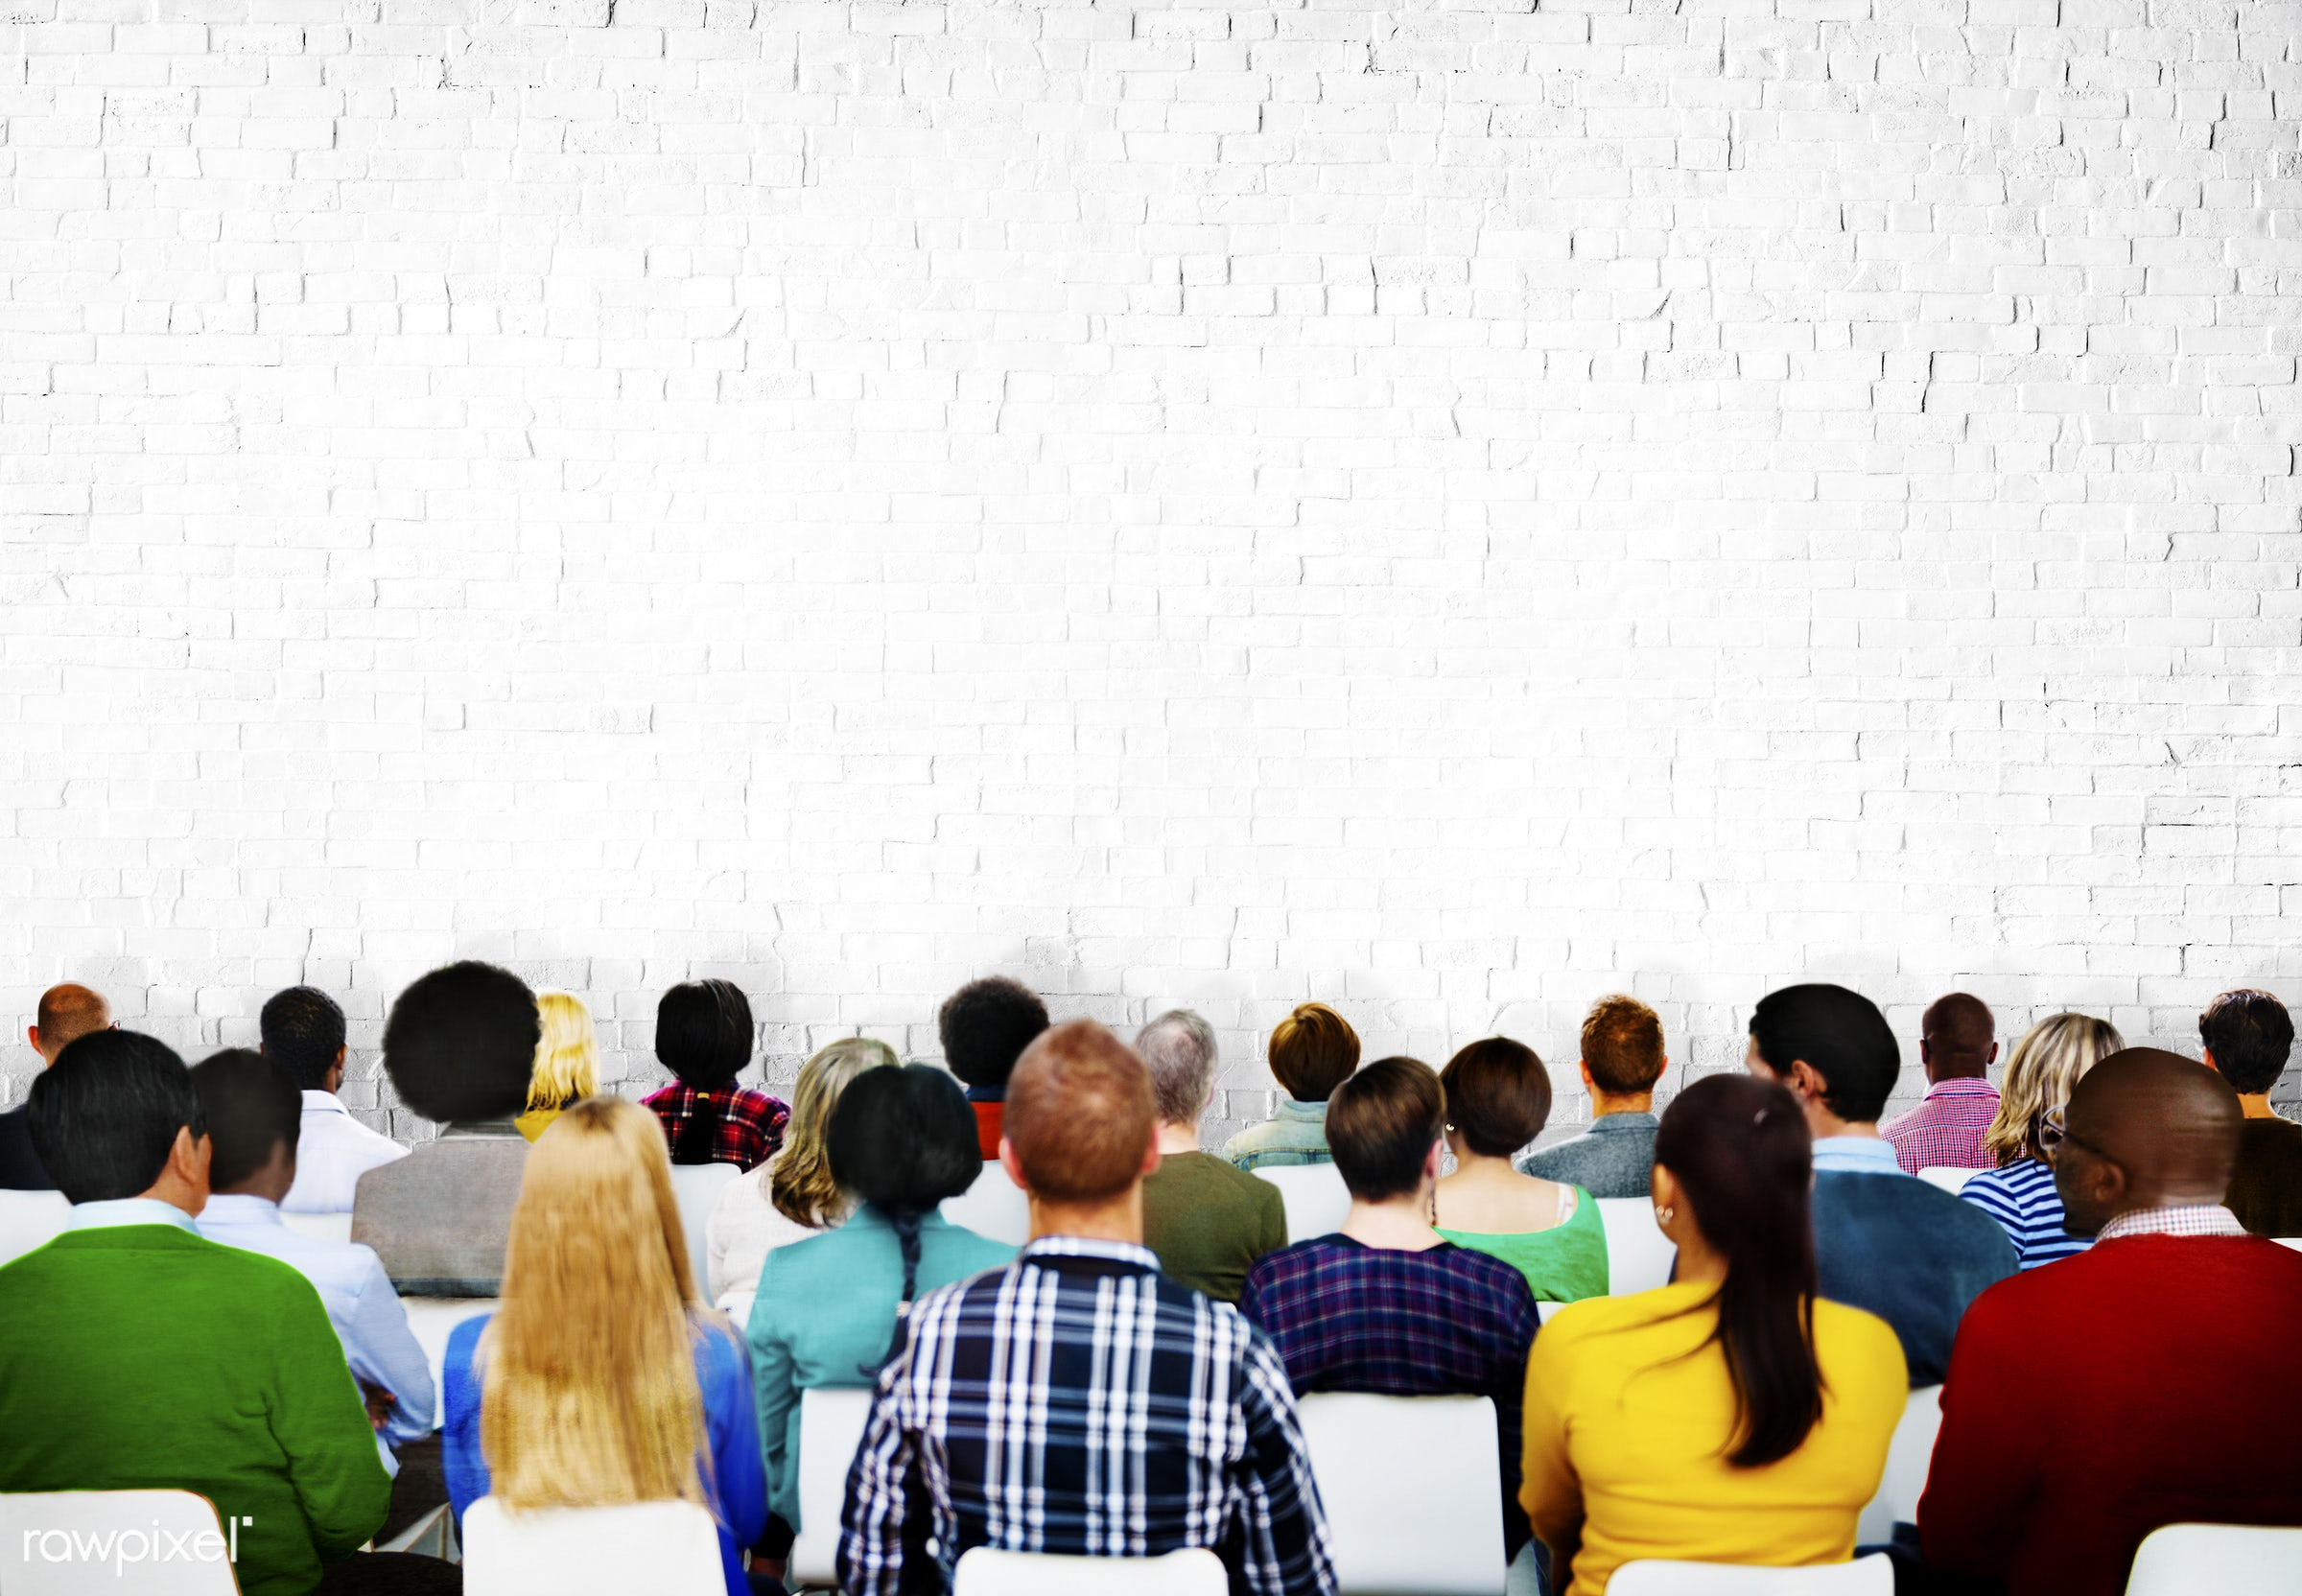 audience, blank, casual, colorful, communicate, communication, community, conference, copy space, crowd, diverse, diversity...